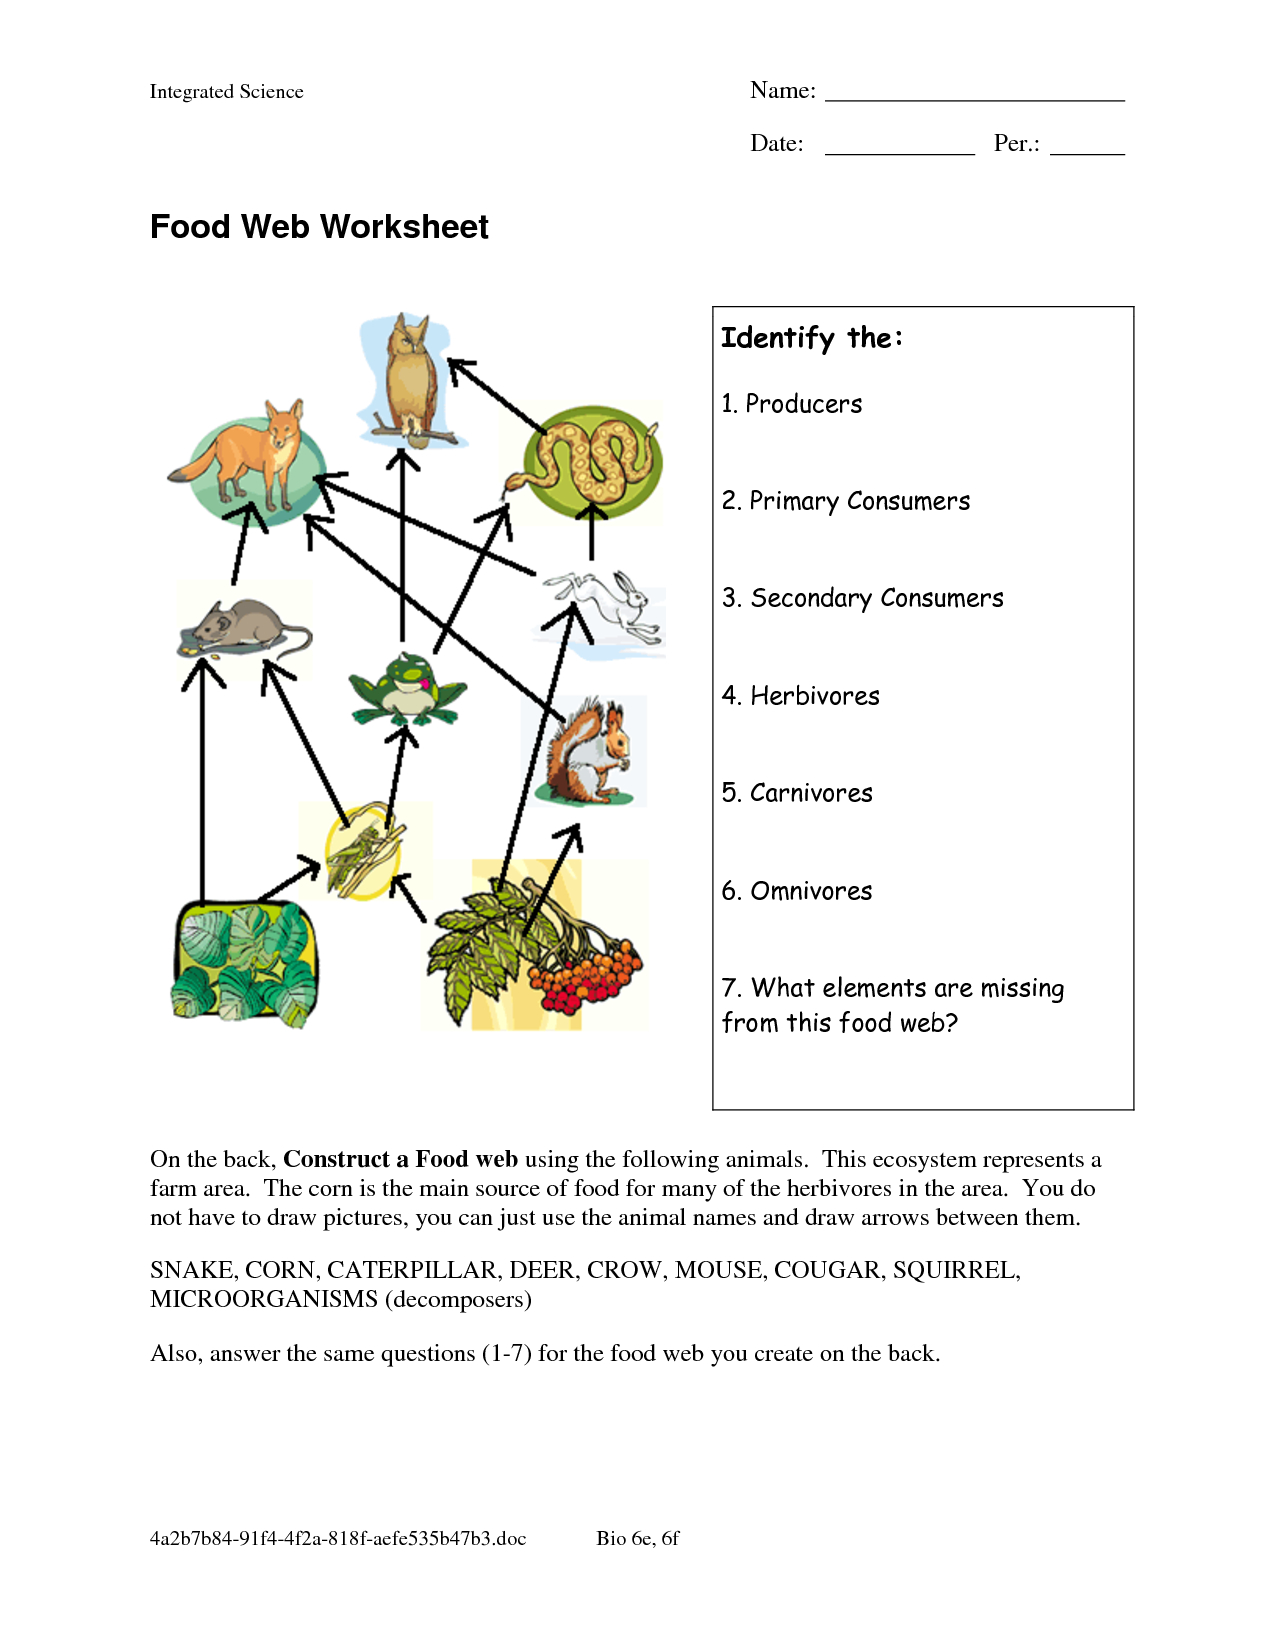 Food Chain Worksheet Answers — db excel.com